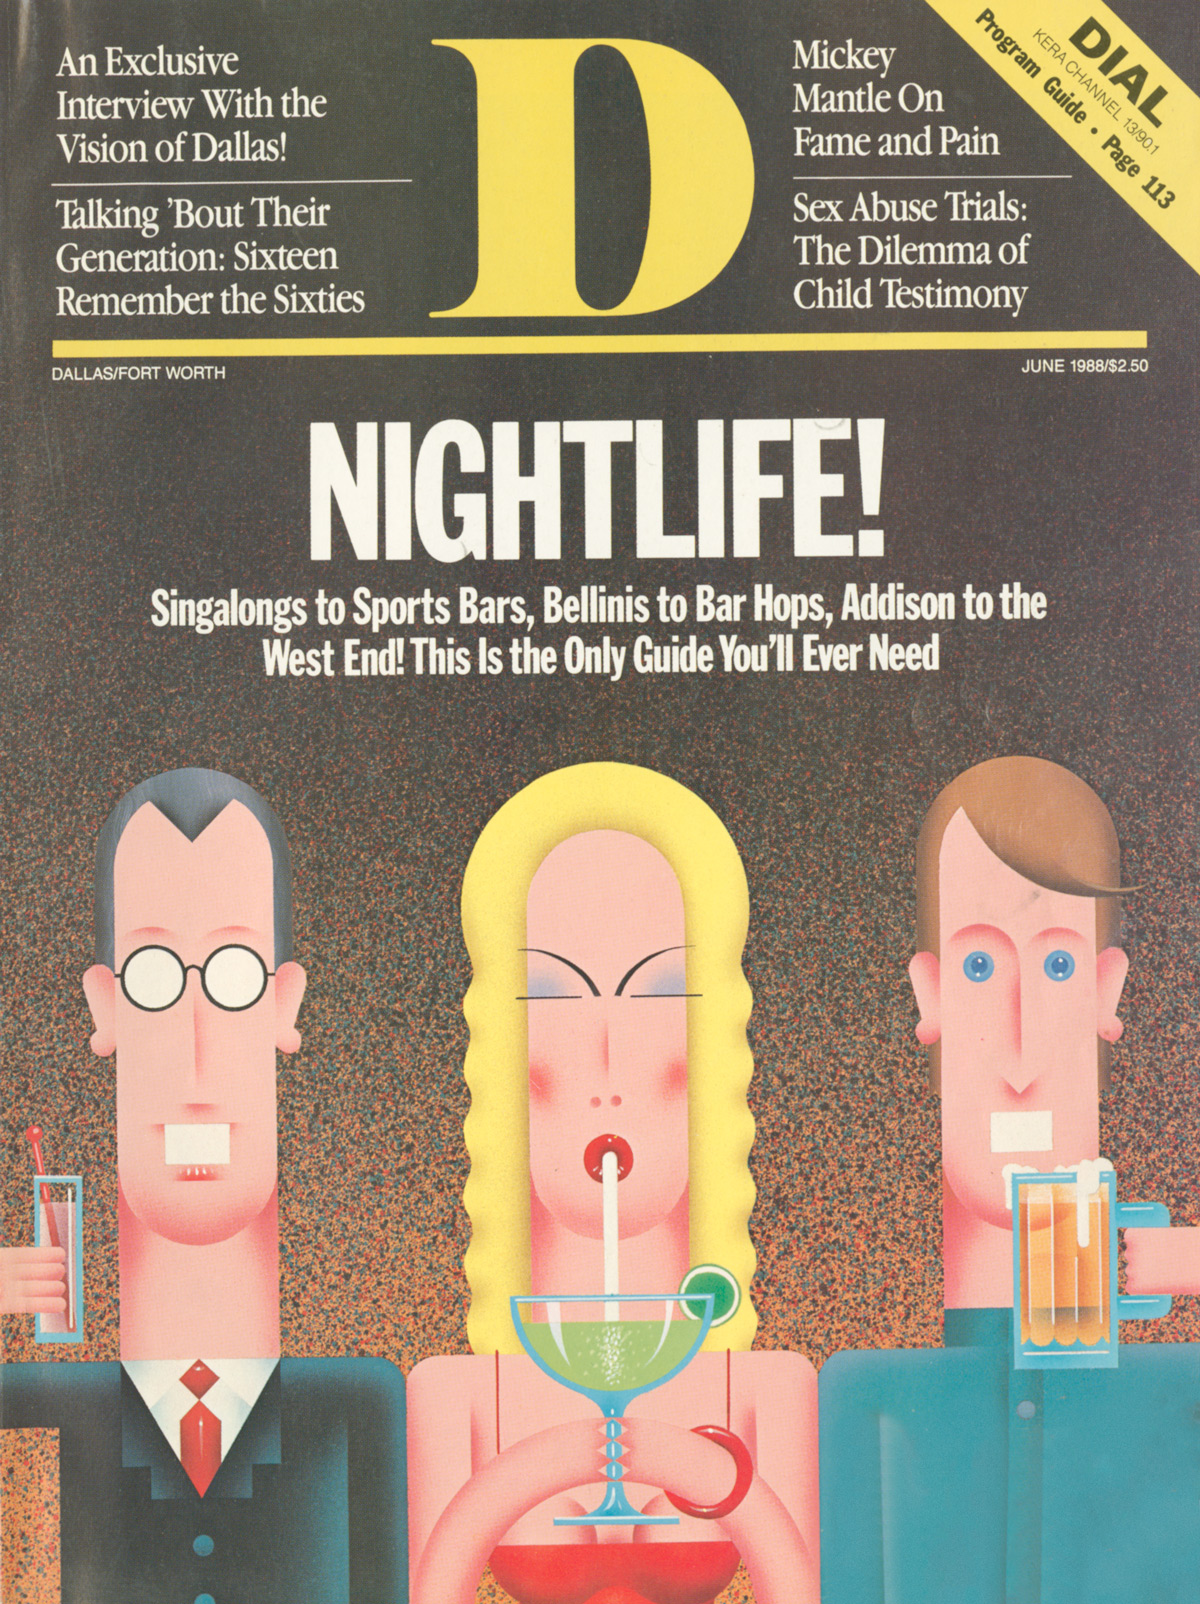 June 1988 cover